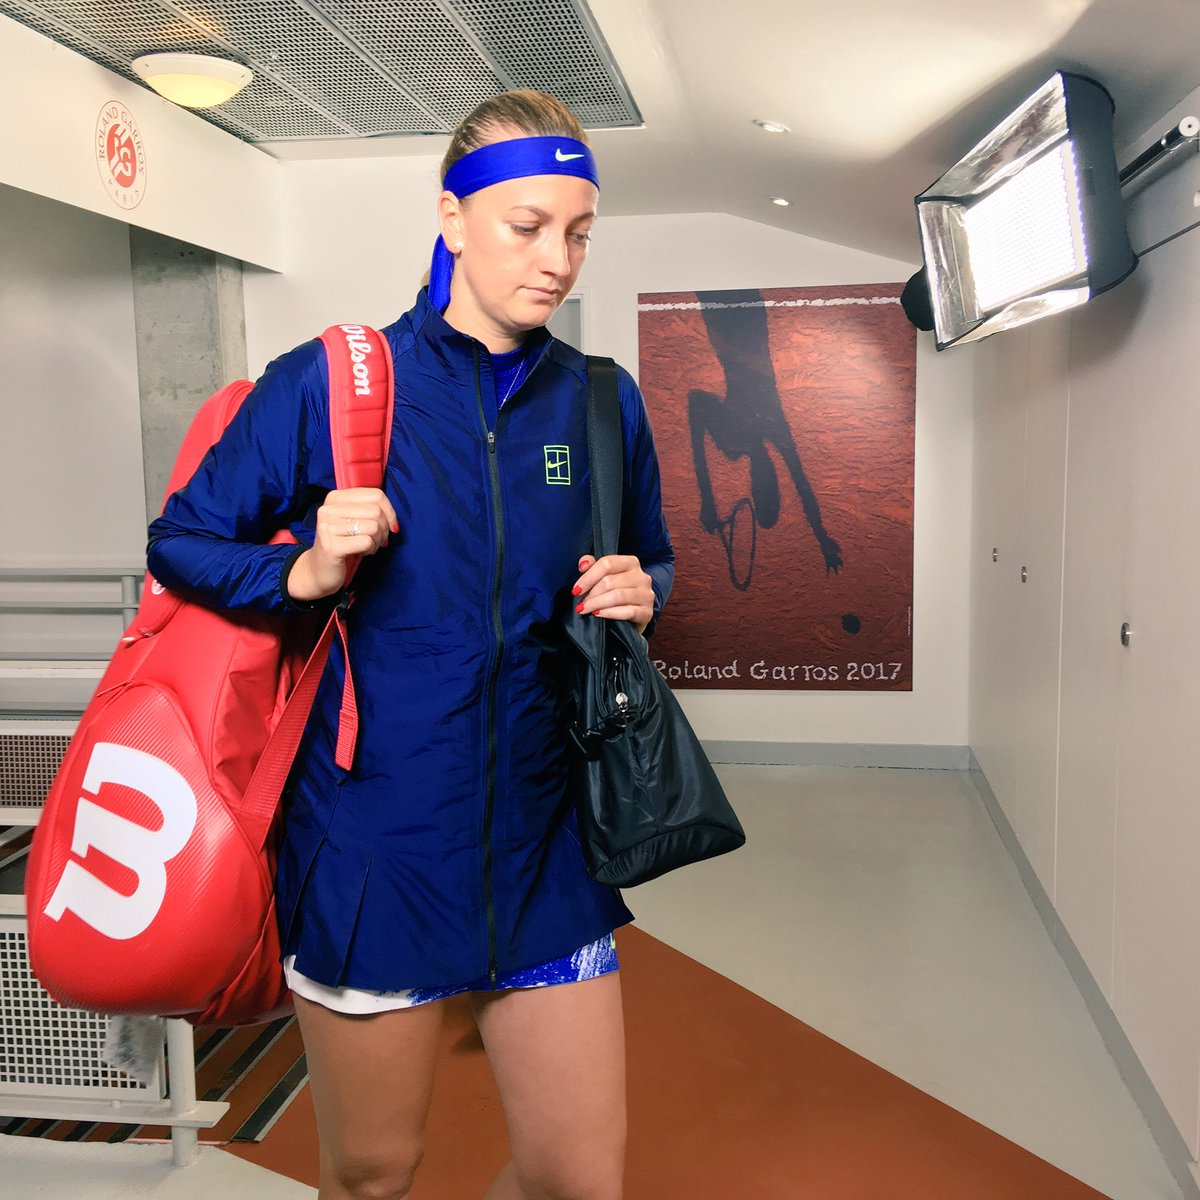 Welcome back to tennis @Petra_Kvitova!   What an amazing moment. #RG17...